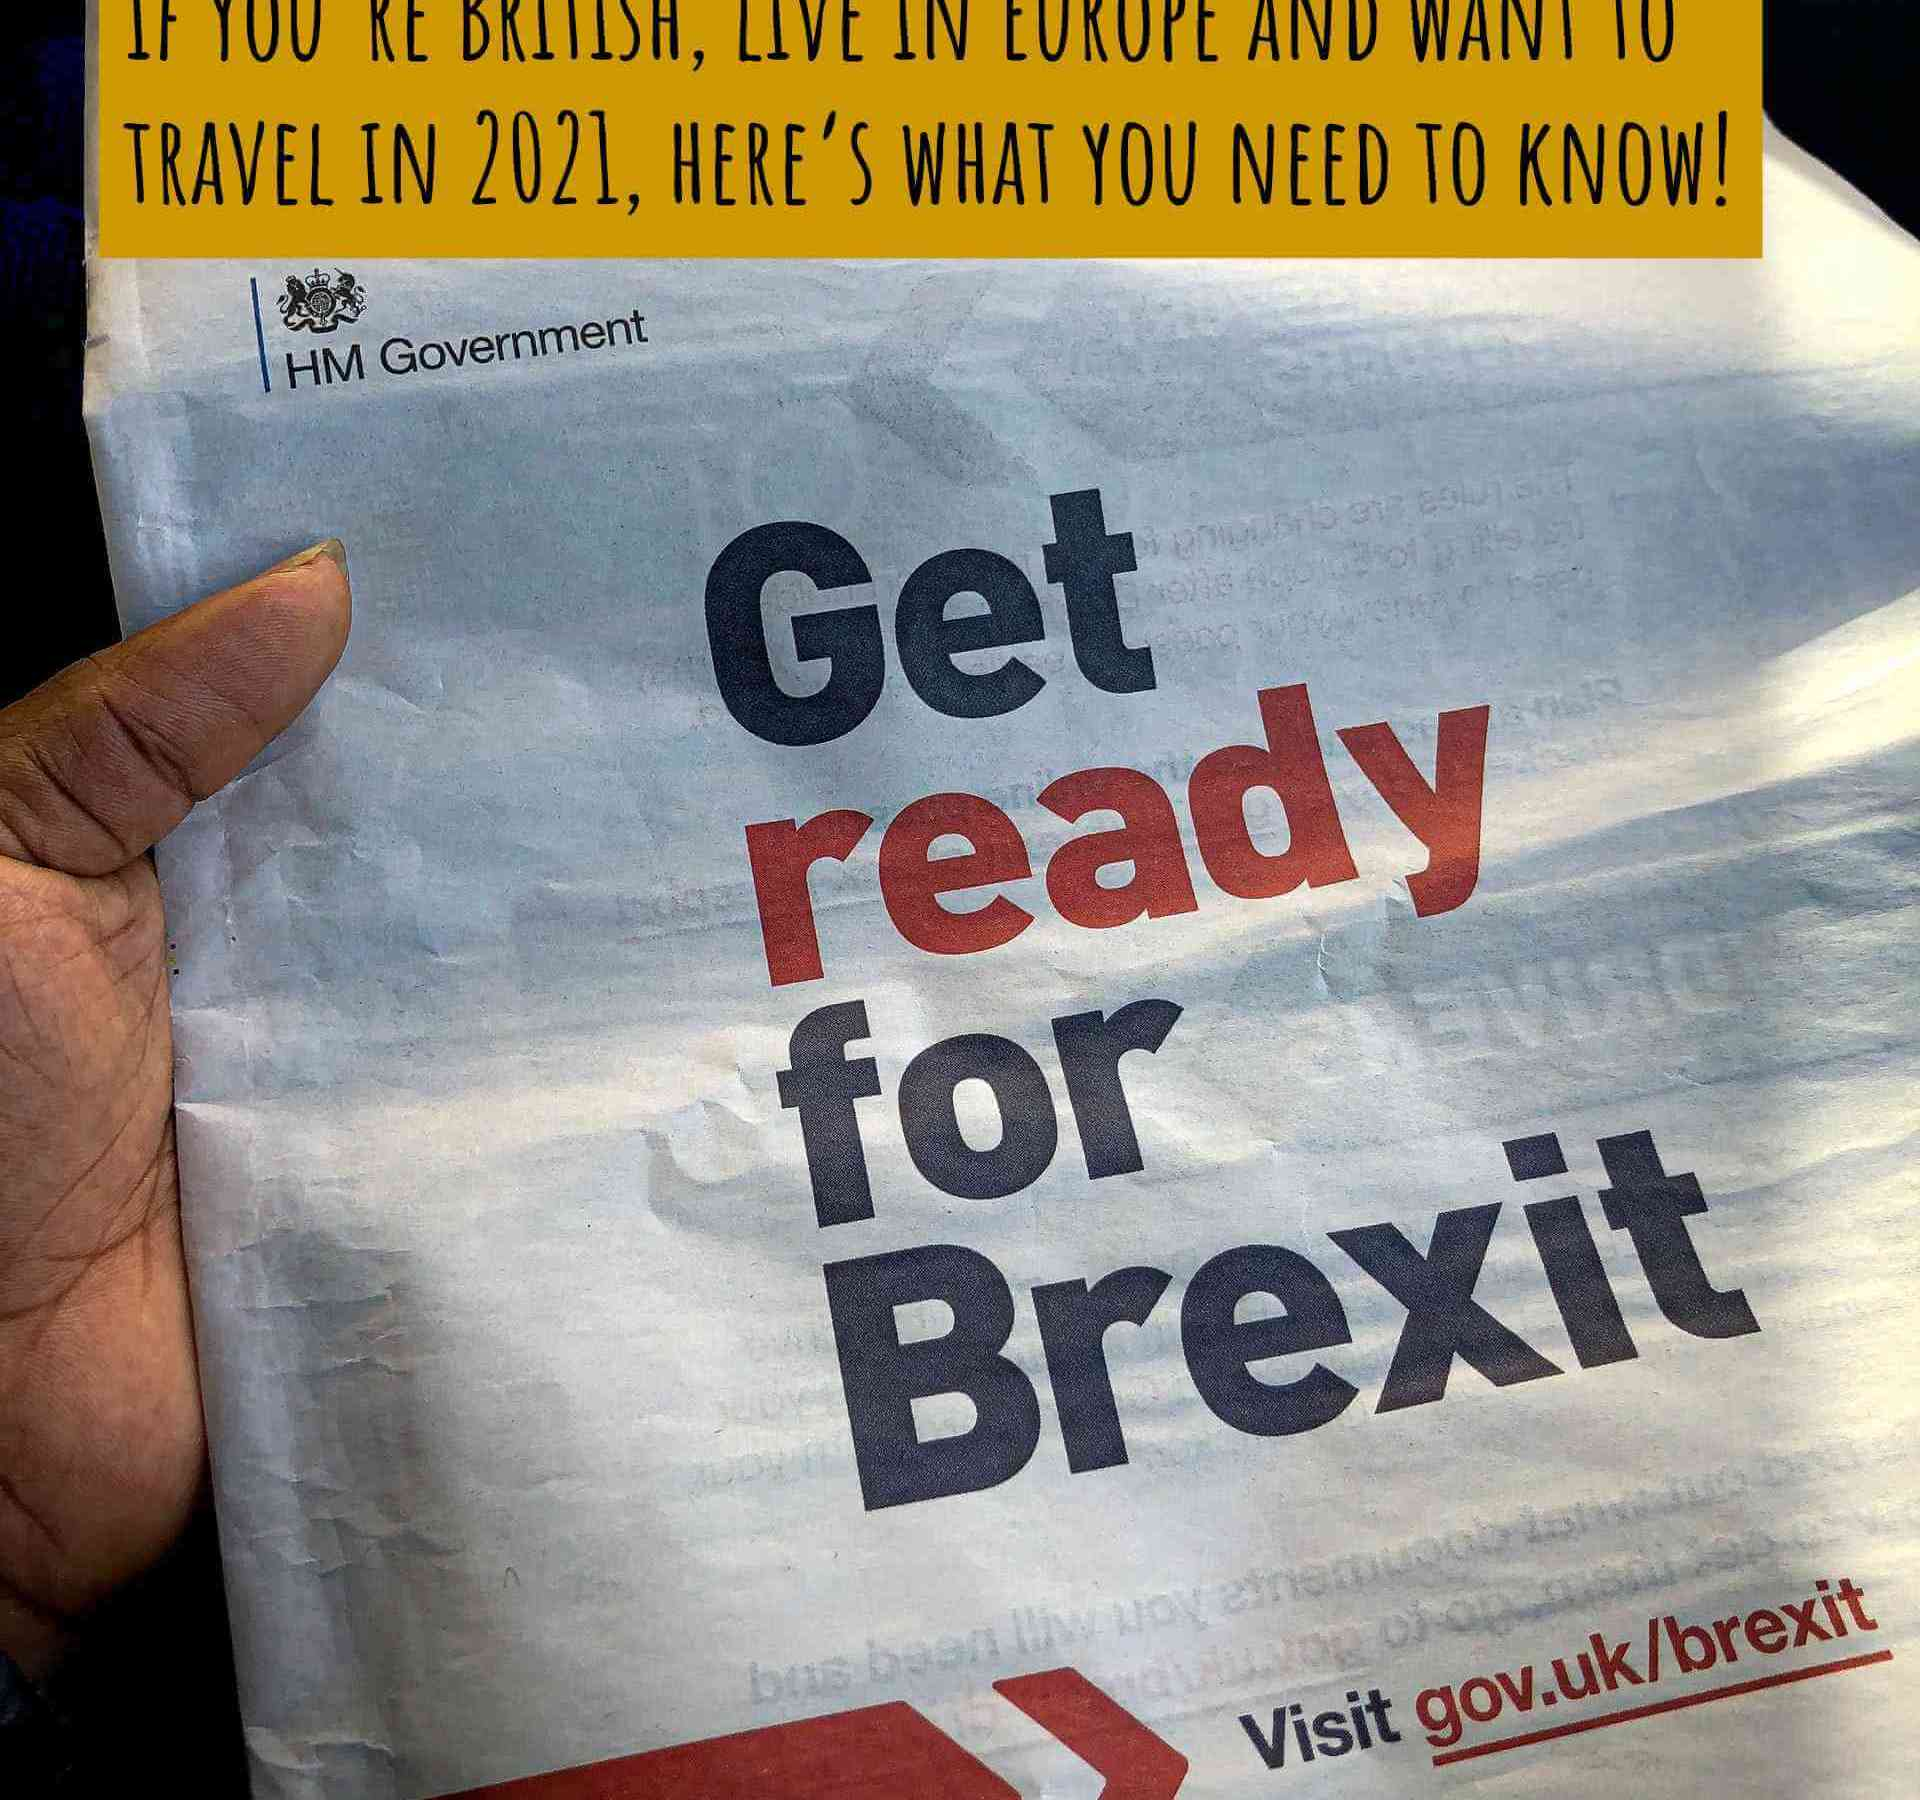 Get ready for Brexit; Brexit; Brexit - What you need to know; Brexit Bollocks; BREXIT chaos; BREXIT! Don't panic!; BREXIT guide; Brexit is boring; Brexit transition period; British expat; British in Berlin; British in Europe; British in Germany; Citizens' Rights; EU referendum; European politics; expat; free movement; Hard Brexit; No-Deal Brexit; politics; transition period; UK nationals in the EU; UK withdrawal from the EU; what does Brexit mean; what is Brexit; Withdrawal Agreement; Britain; British; EU; European Union; Europe; European; Germany; the UK; UK; United Kingdom; European travel; travel in the EU; travel through Europe; travel to Europe; travel;